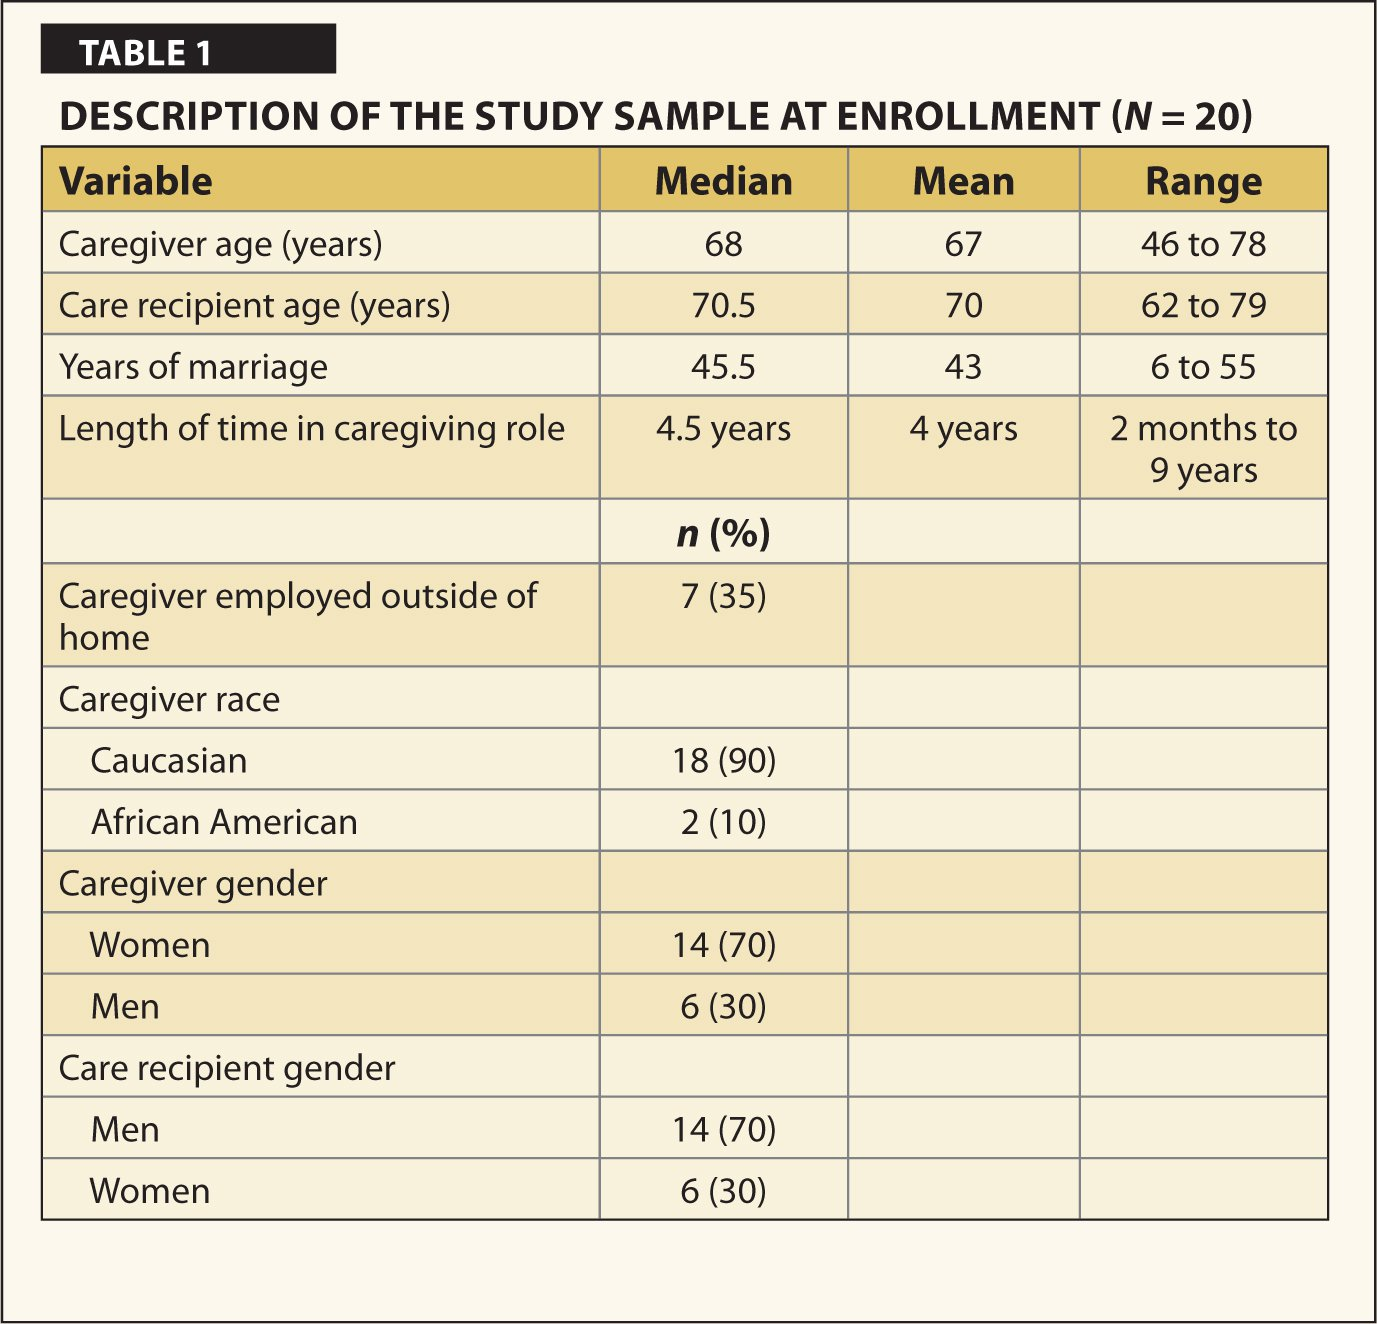 Description of the Study Sample at Enrollment (N = 20)